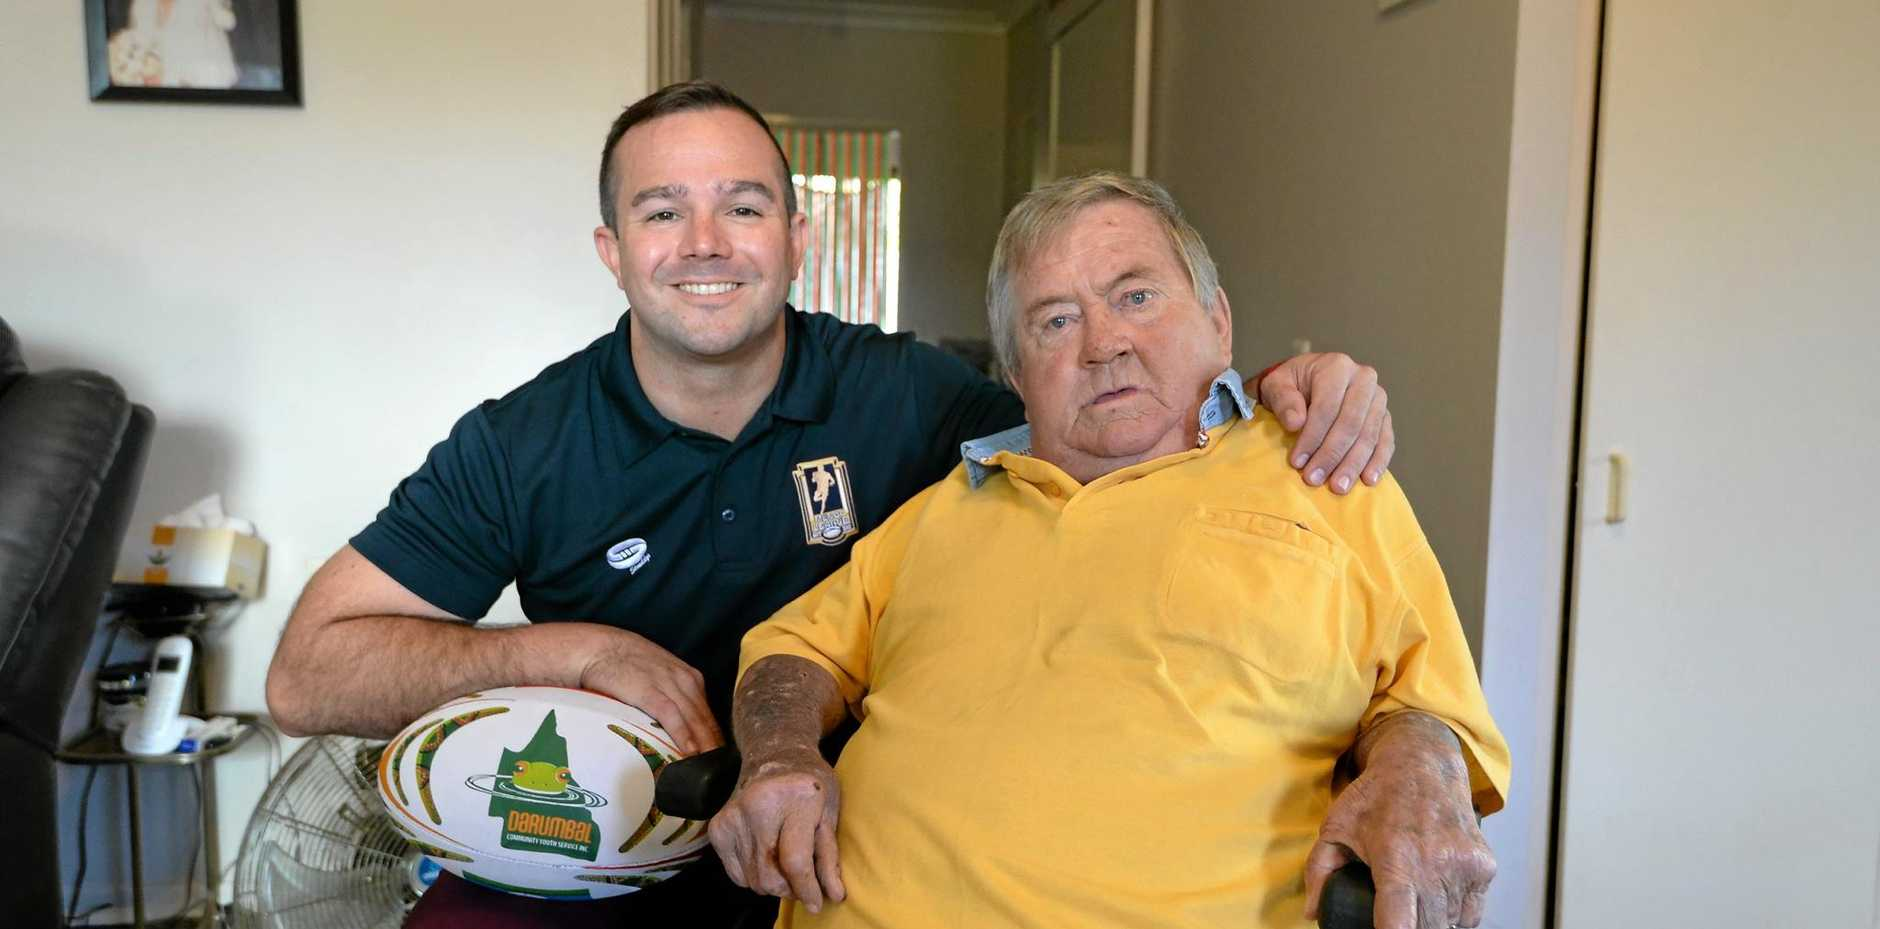 Former NRL player Jamie Simpson (left) enjoys his visits to John Burrows where they can chat about rugby league and life.